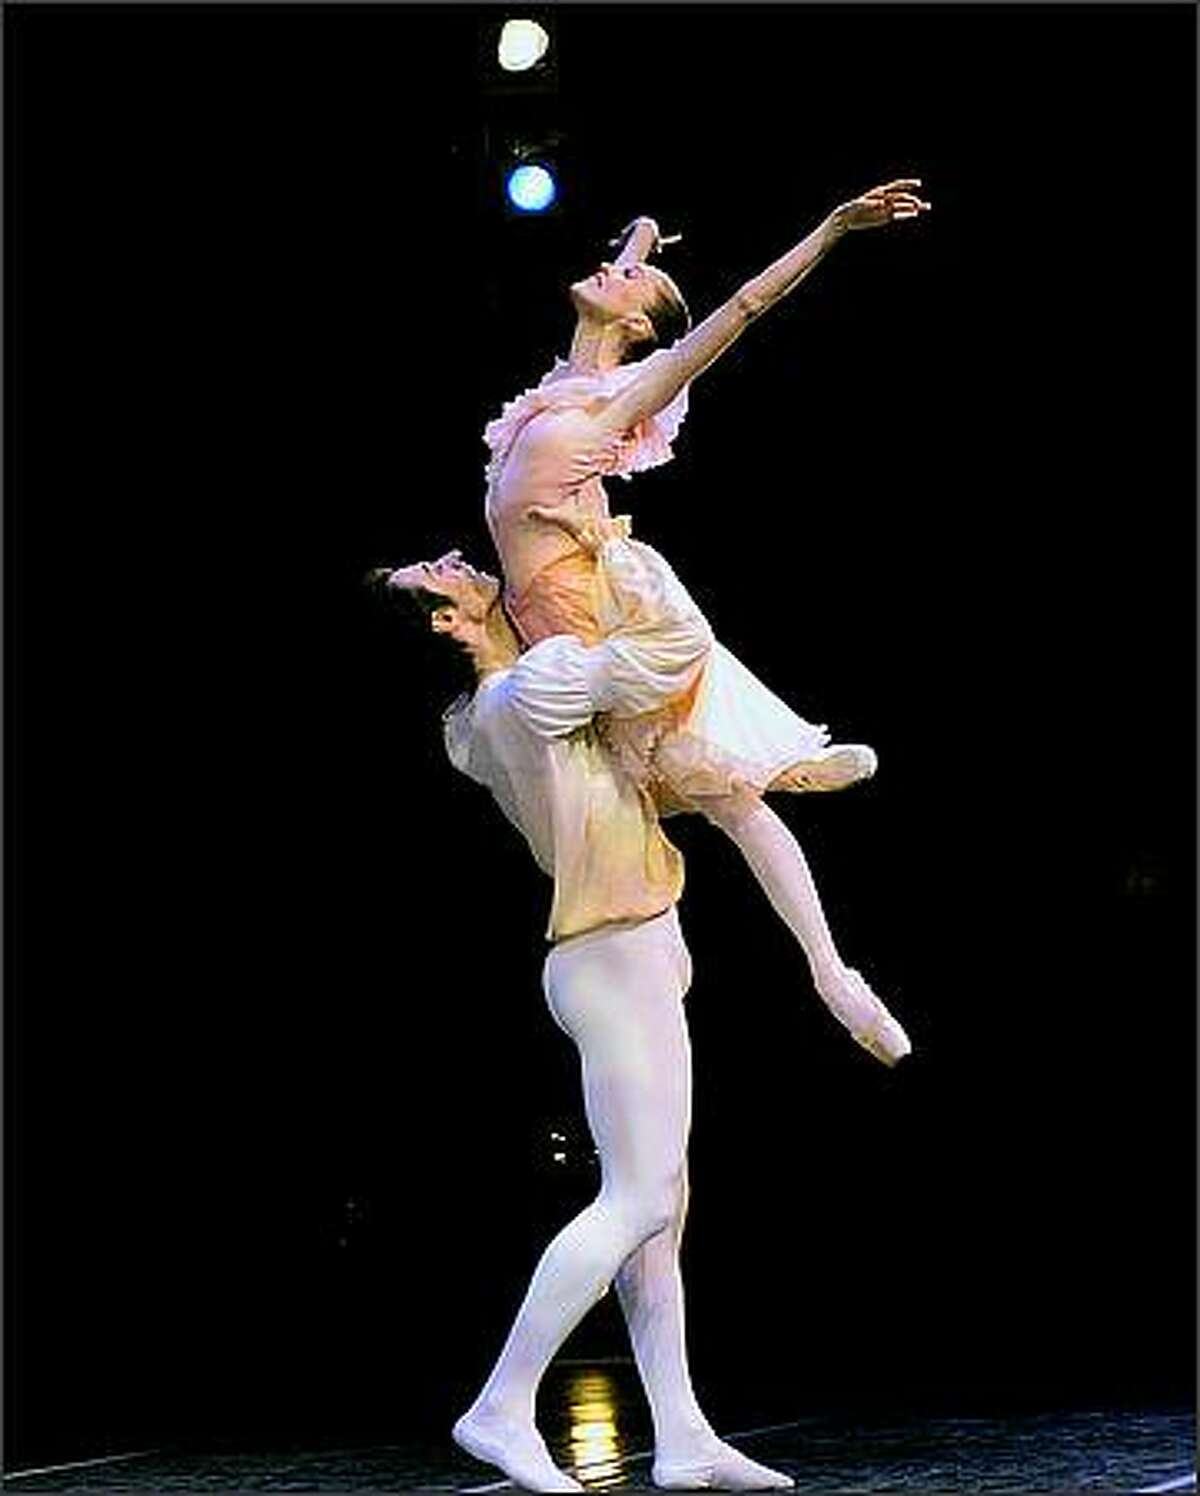 Pacific Northwest Ballet principal dancer Louise Nadeau with former PNB principal Christophe Maraval in George Balanchine's Brahms-Schoenberg Quartet.